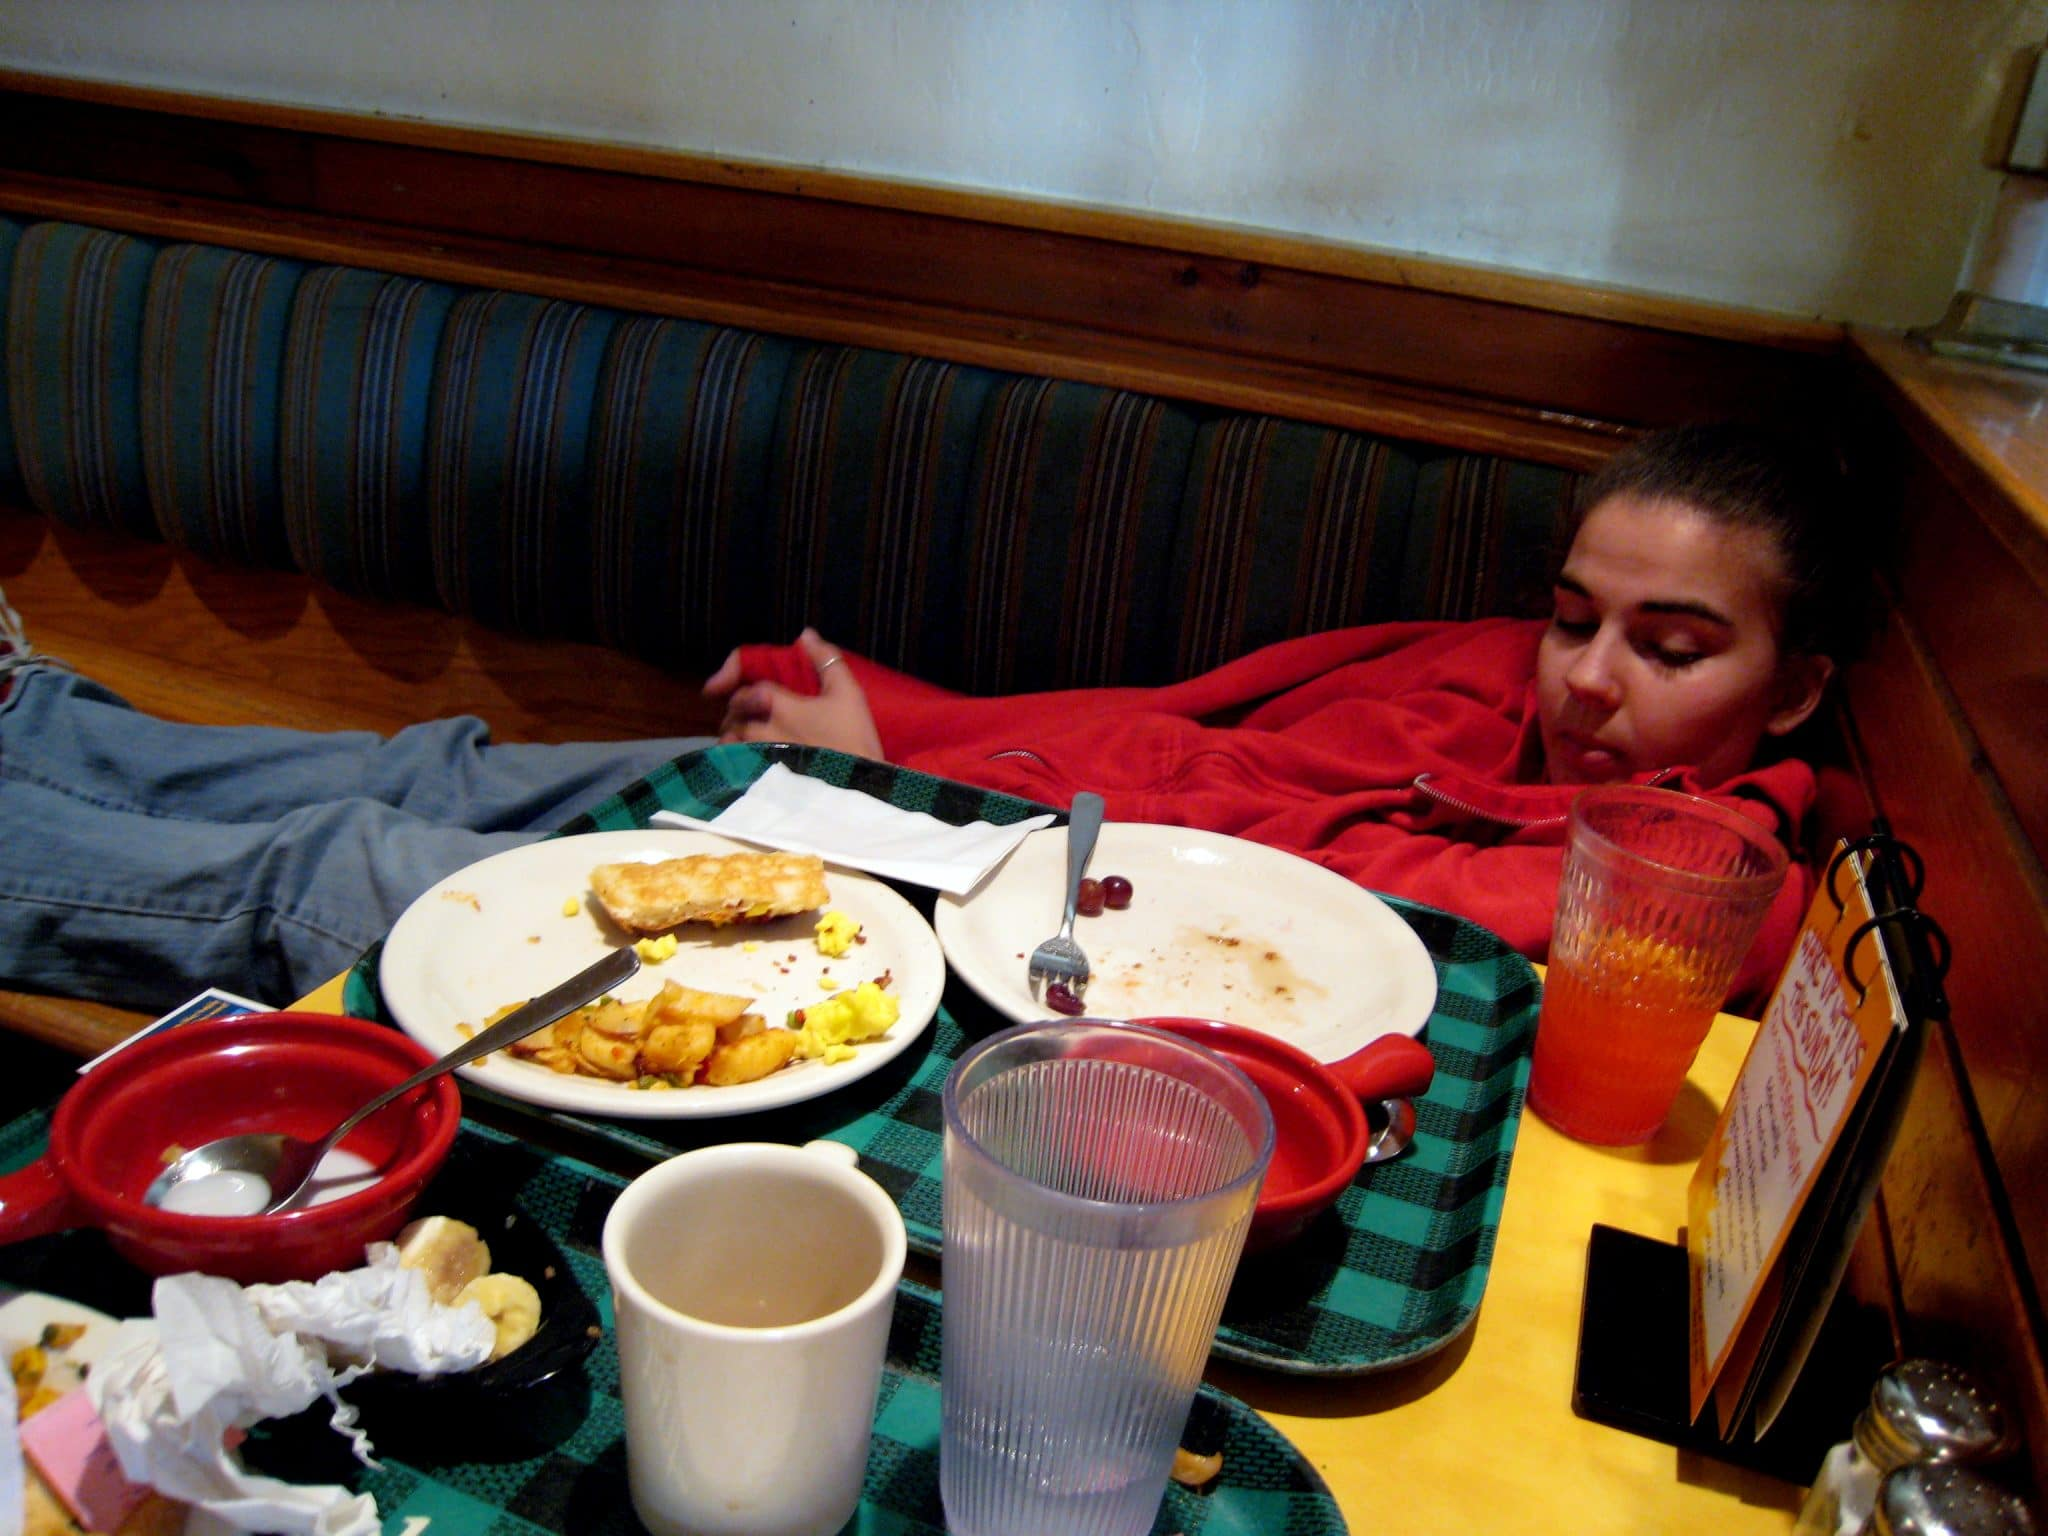 what causes sleepiness after eating, going to sleep after eating